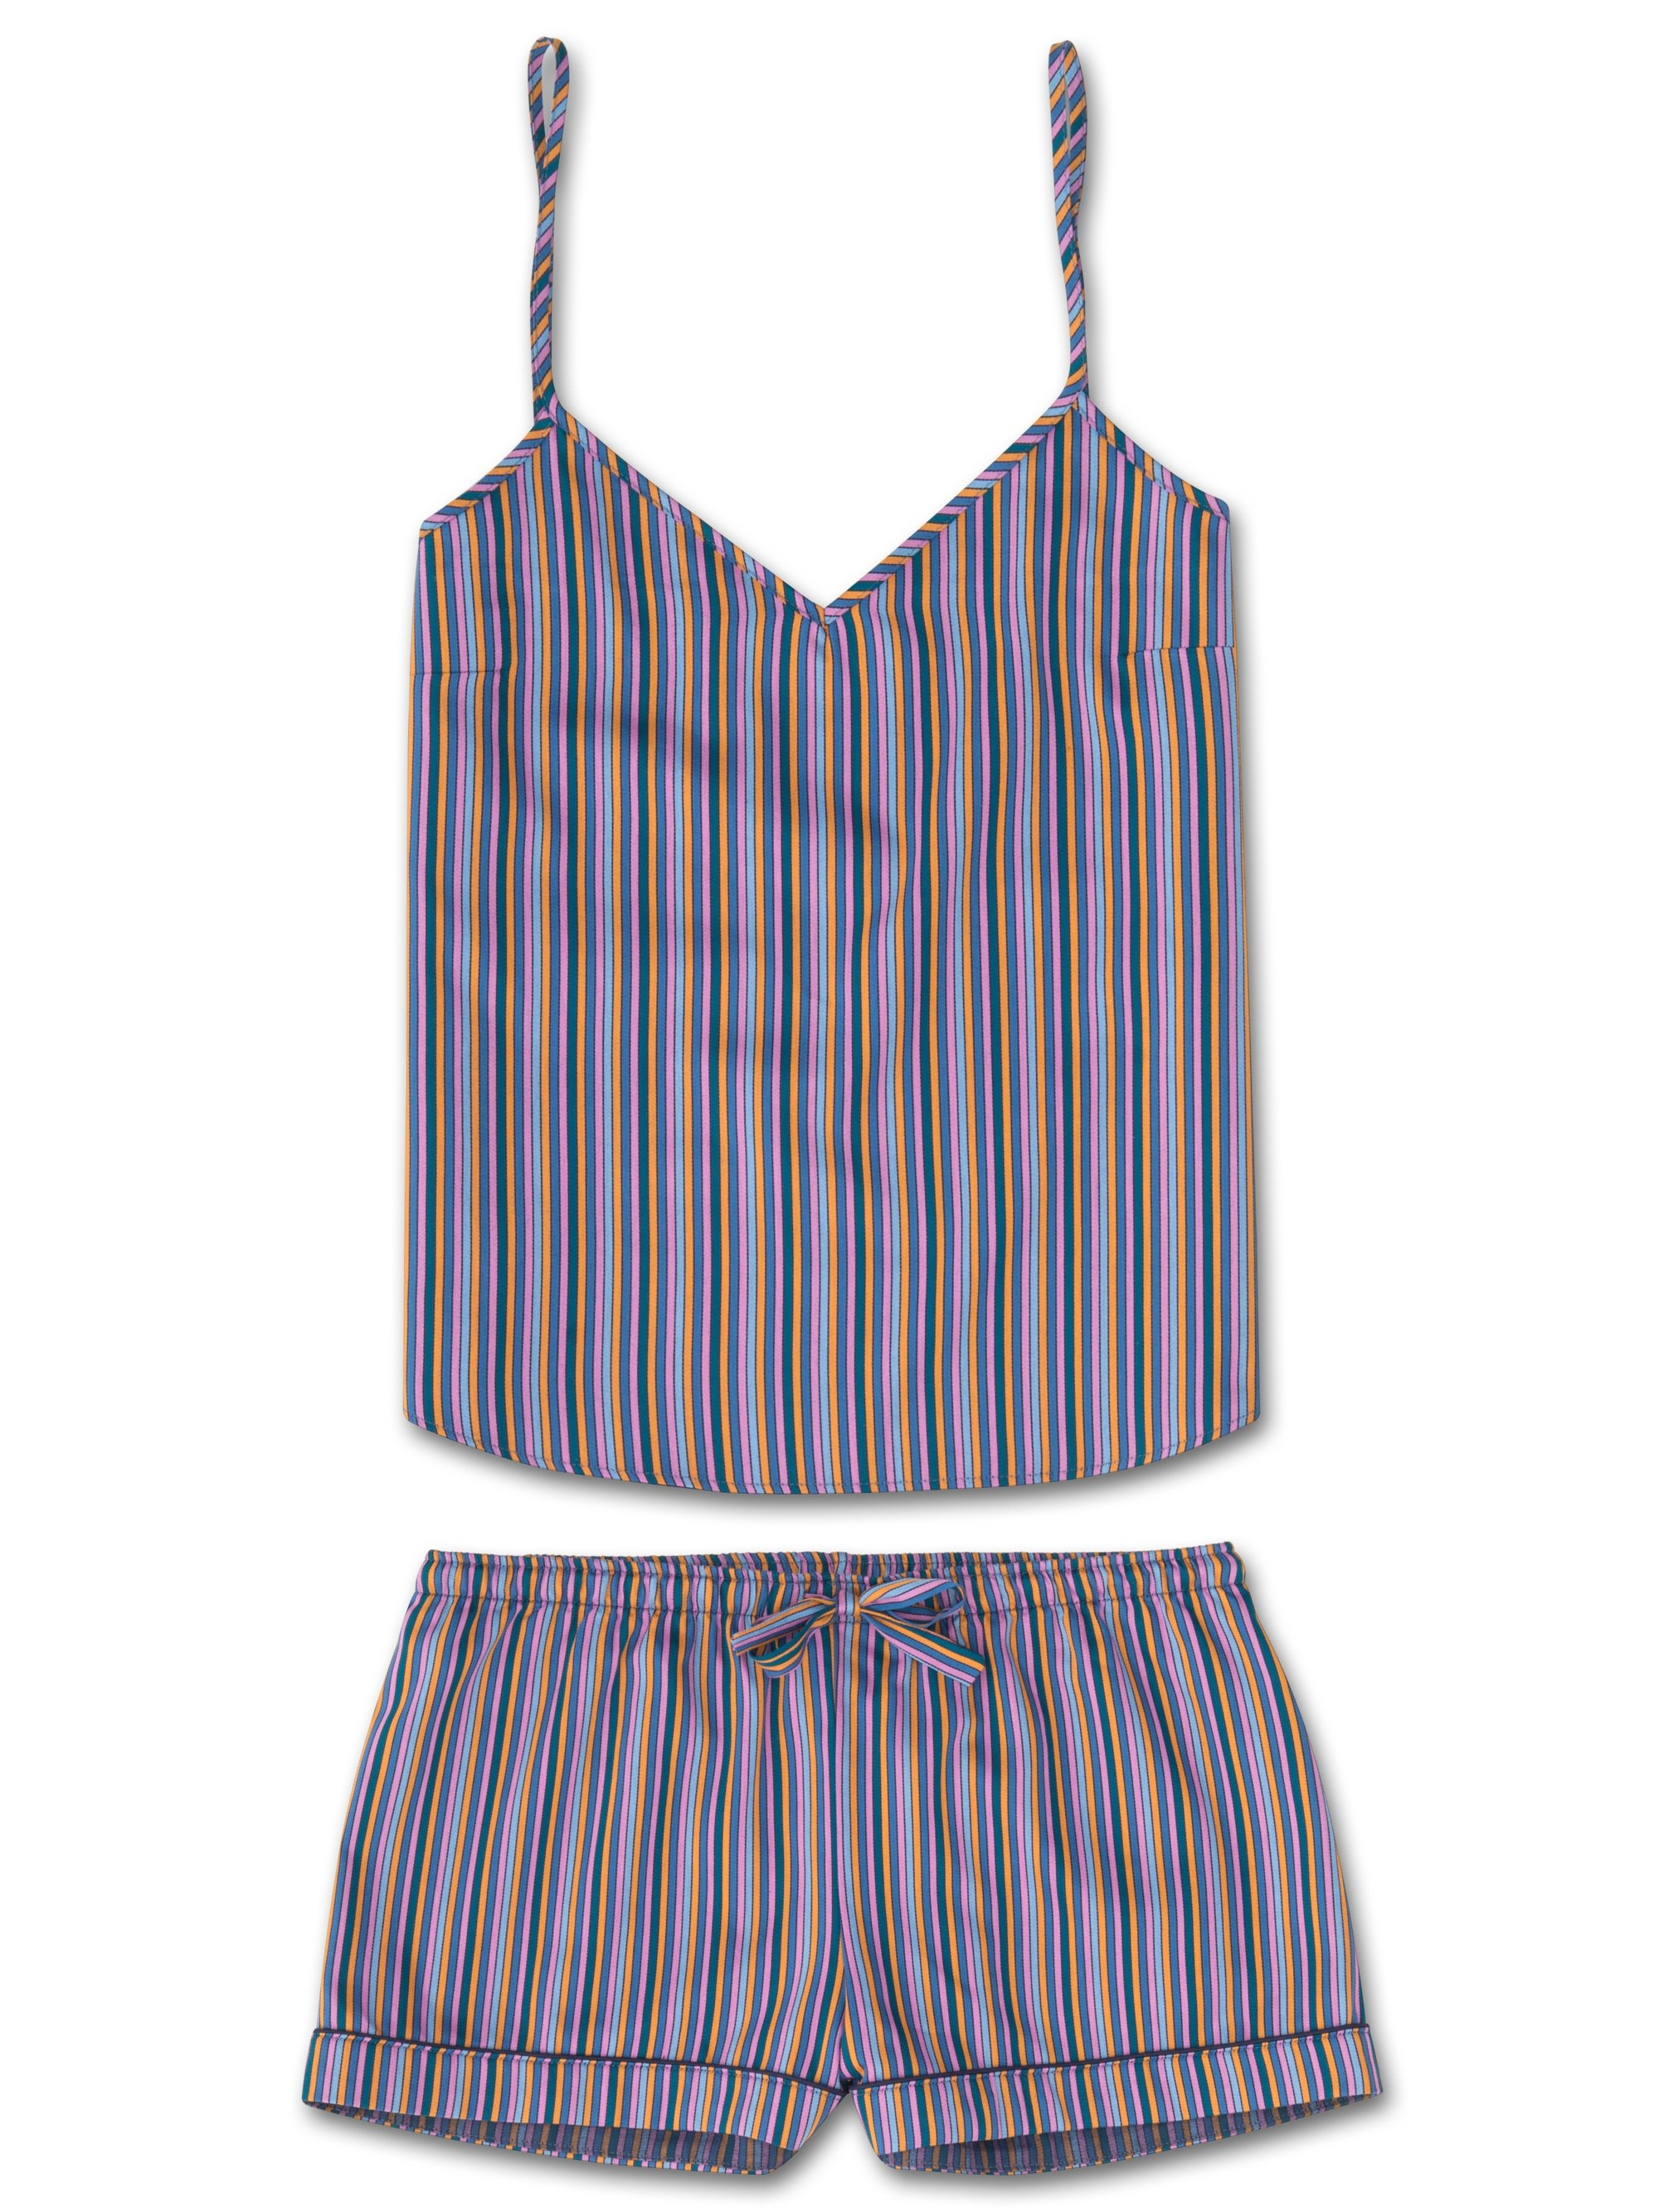 Women's Cami Short Pyjama Set Milly 5 Cotton Full Satin Stripe Multi